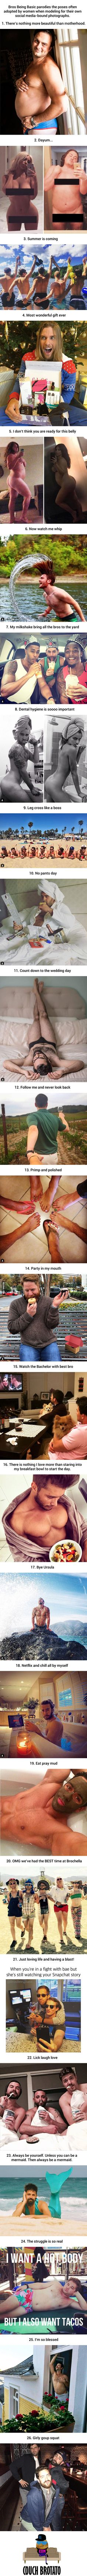 26 Times Men Recreate Clichéd Female Instagram Snaps And Nail It (By Bros Being Basic) - 9GAG